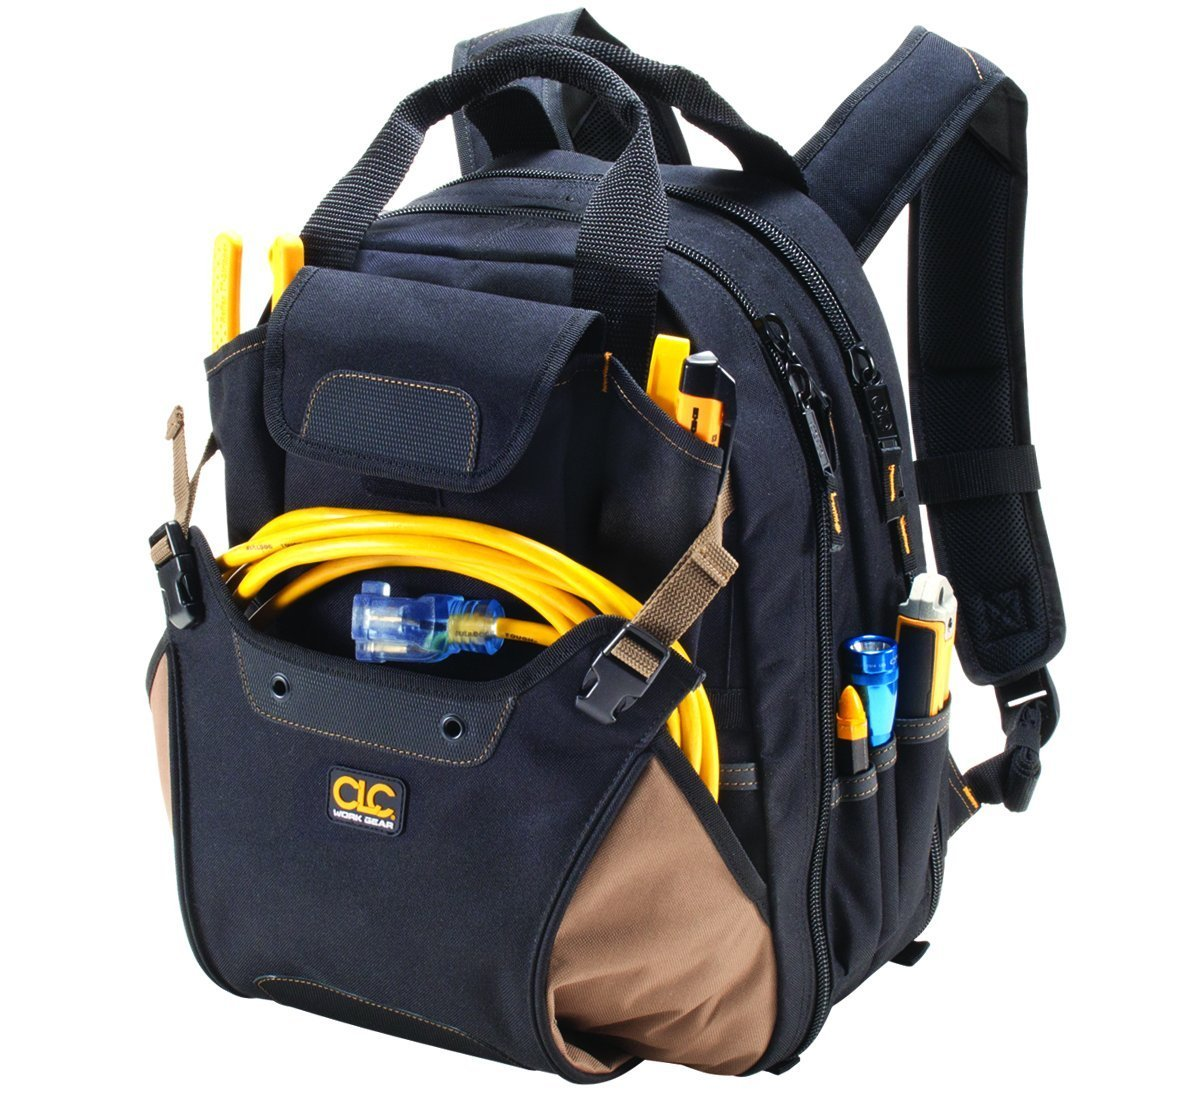 CLC 1134 Carpenter's Tool Backpack with 44 Pockets and Padded Back Support by Custom Leathercraft (Image #7)